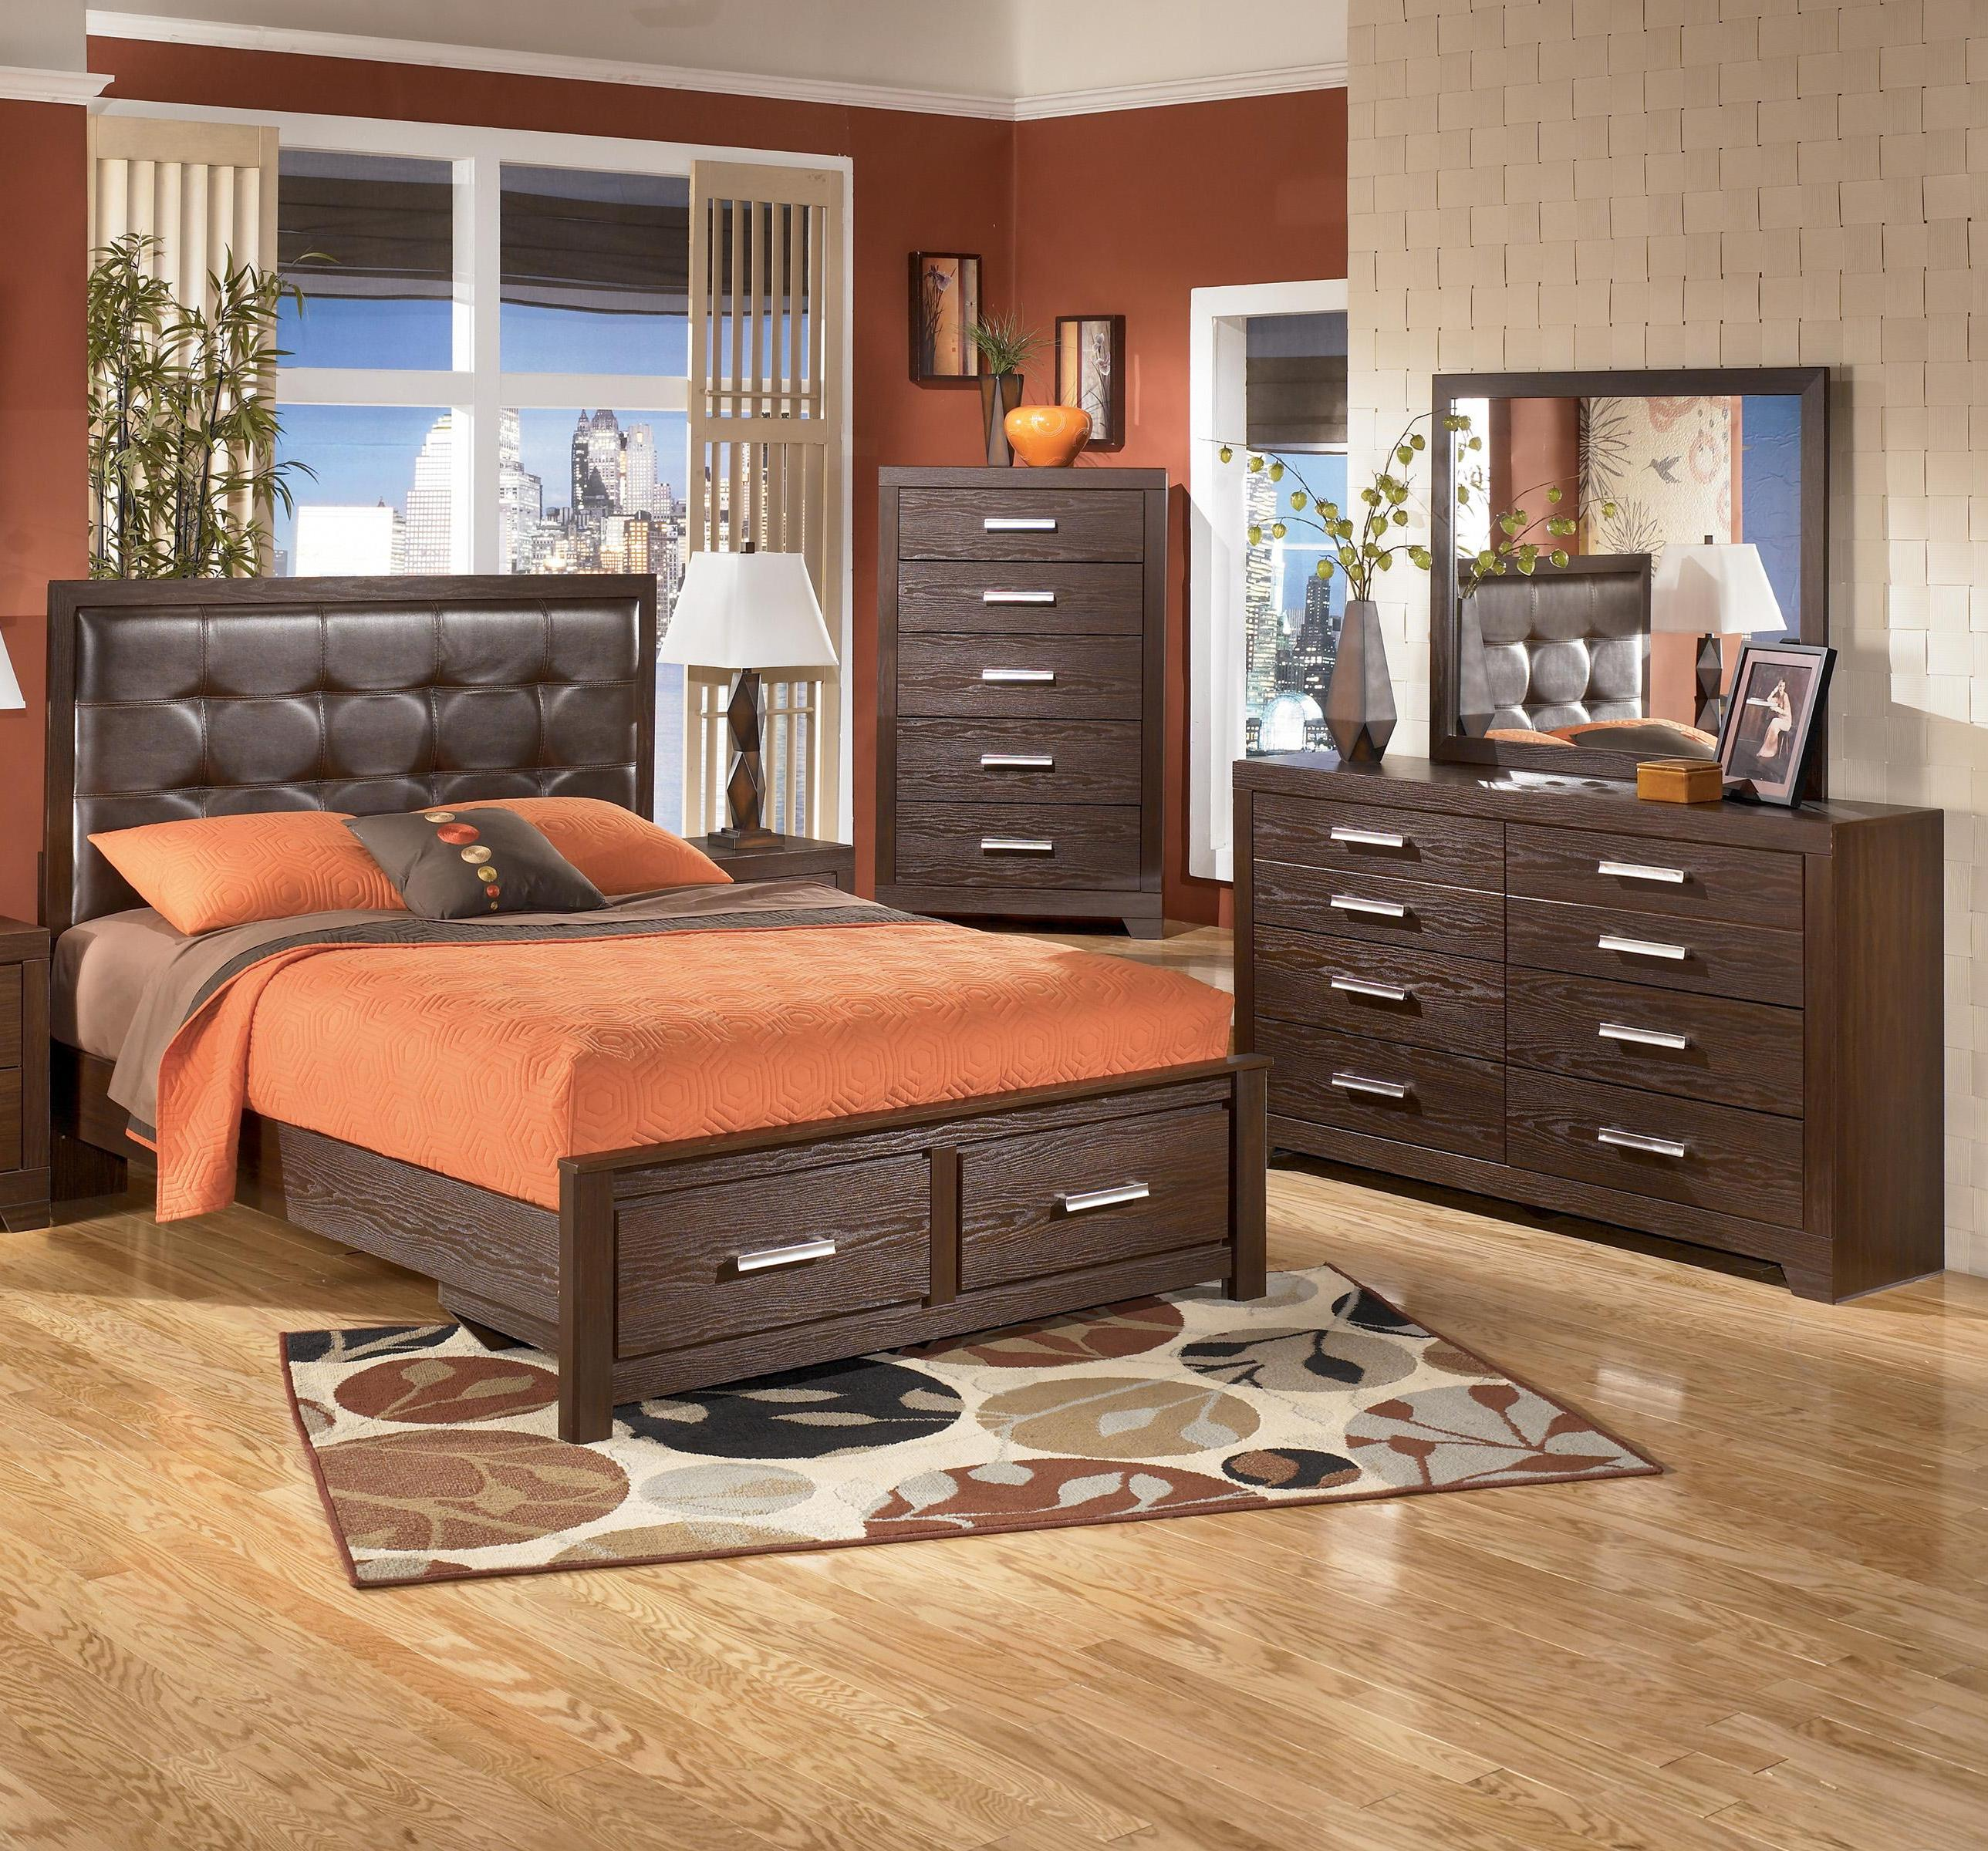 Signature Design by Ashley Aleydis 4 Piece Queen Bedroom Group - Item Number: B165 Q 4 Piece